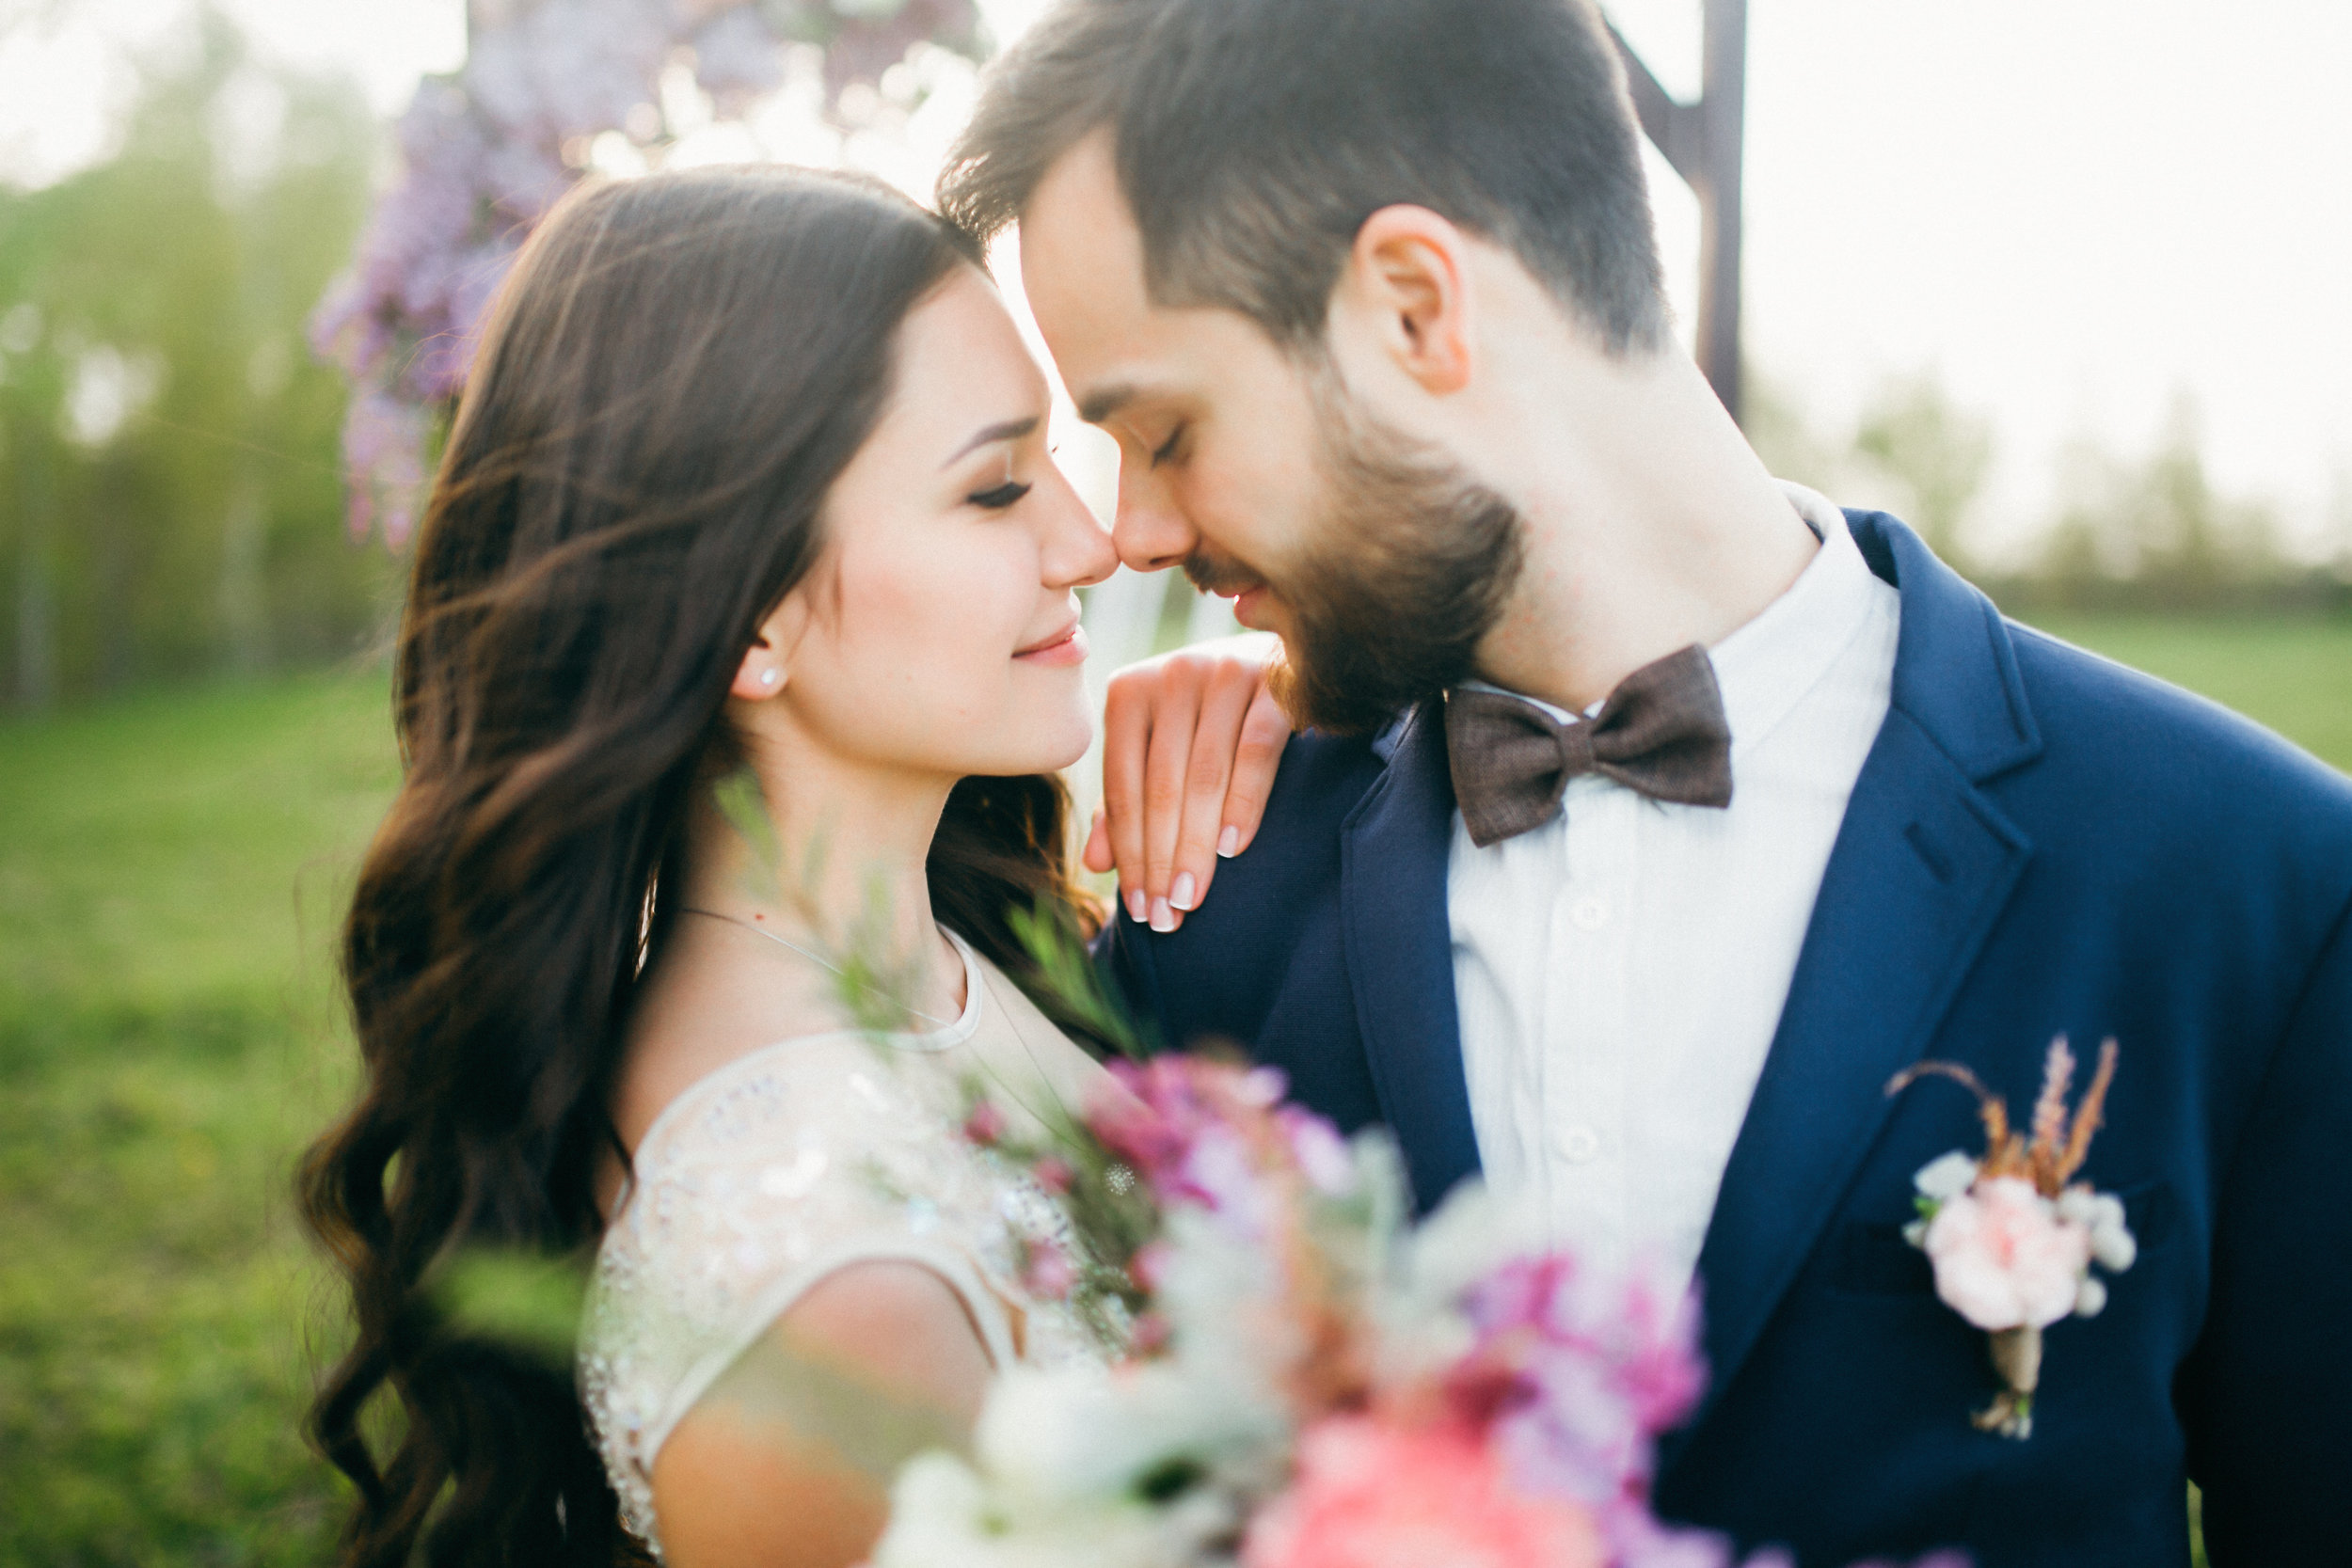 Wedding Planning - We offer a full range of wedding planning services to suit every couple's needs, from full-service planning to destination weddings.